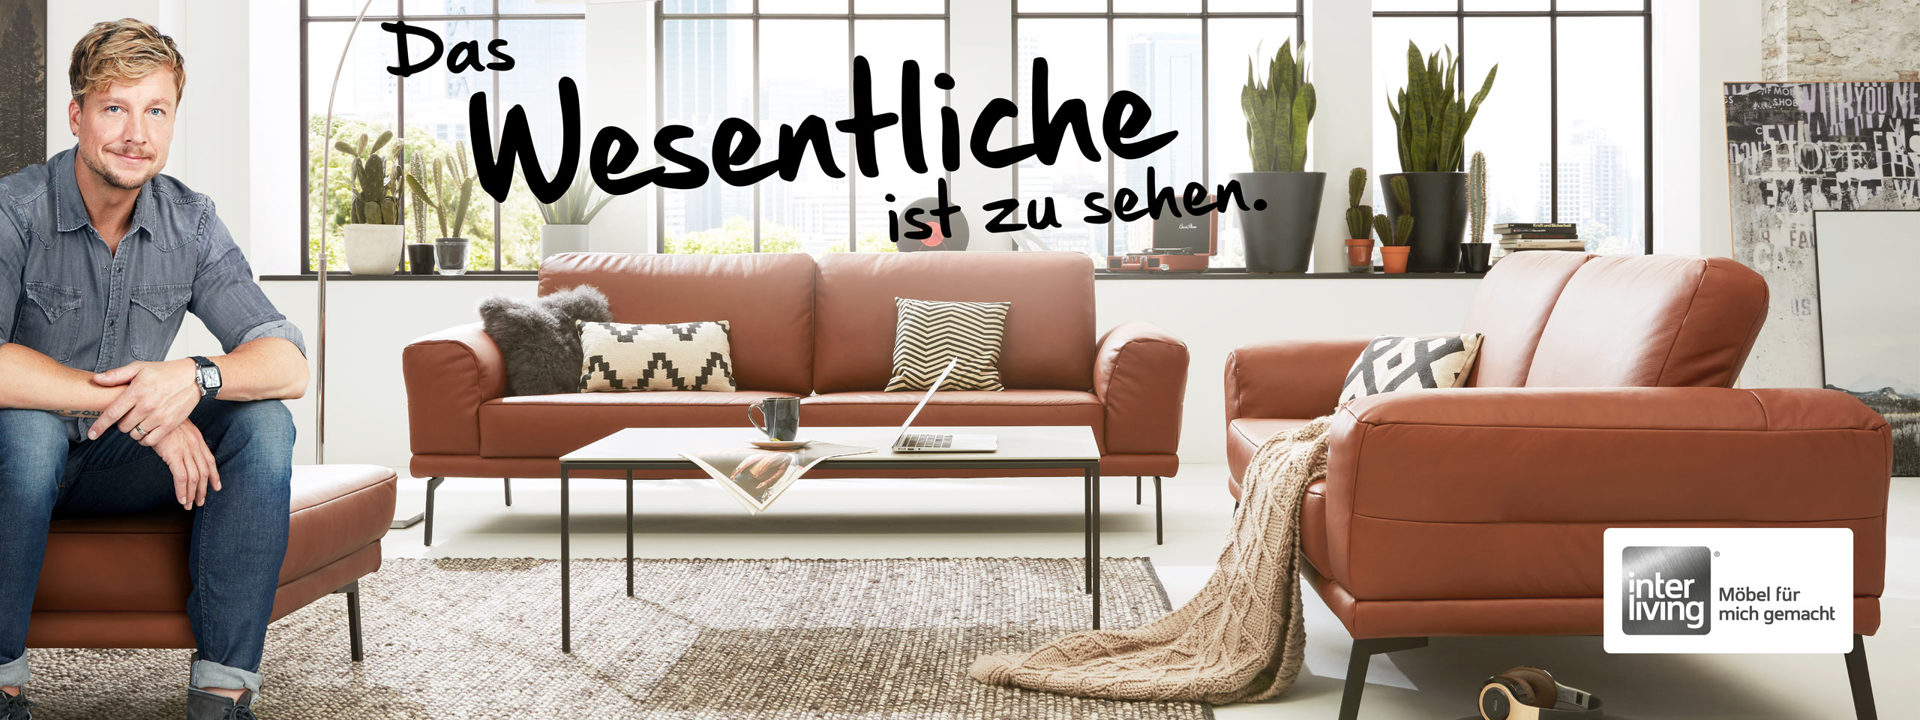 VME Interliving Online Kampagne 2020 Milieu Office Sofa4102 Quer16 6